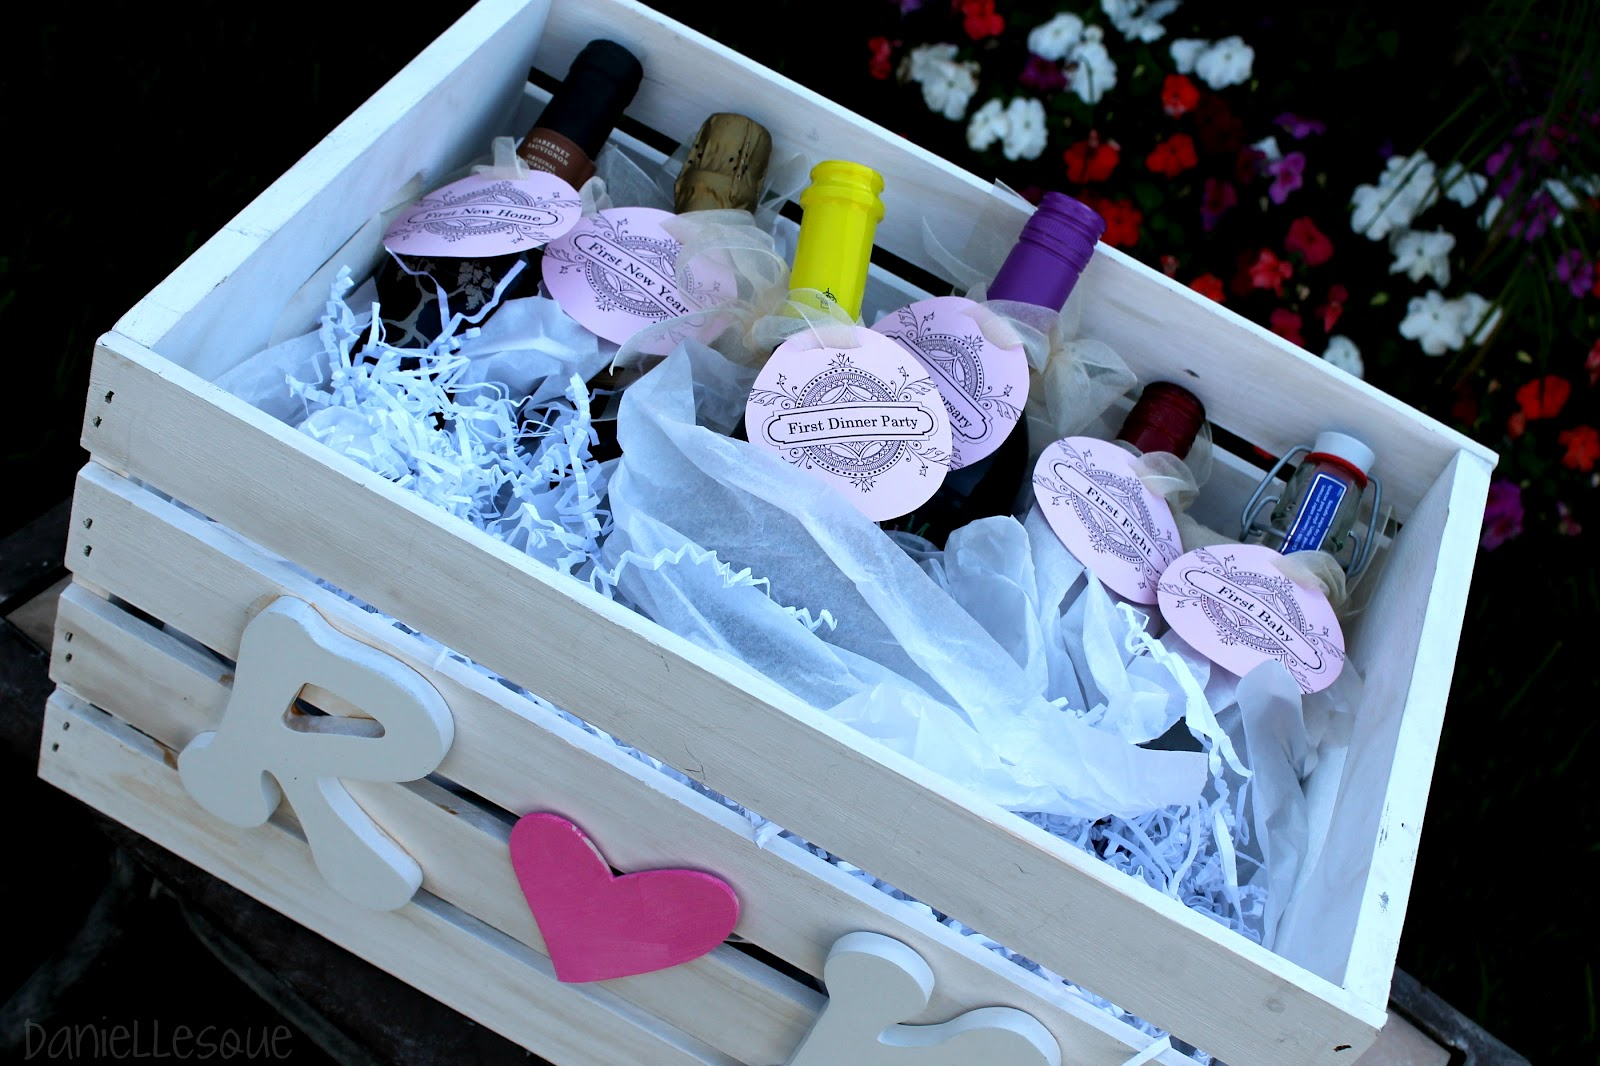 Creative Wedding Gift Basket Ideas : daniellesque: Bridal Shower Gift: Basket of Firsts